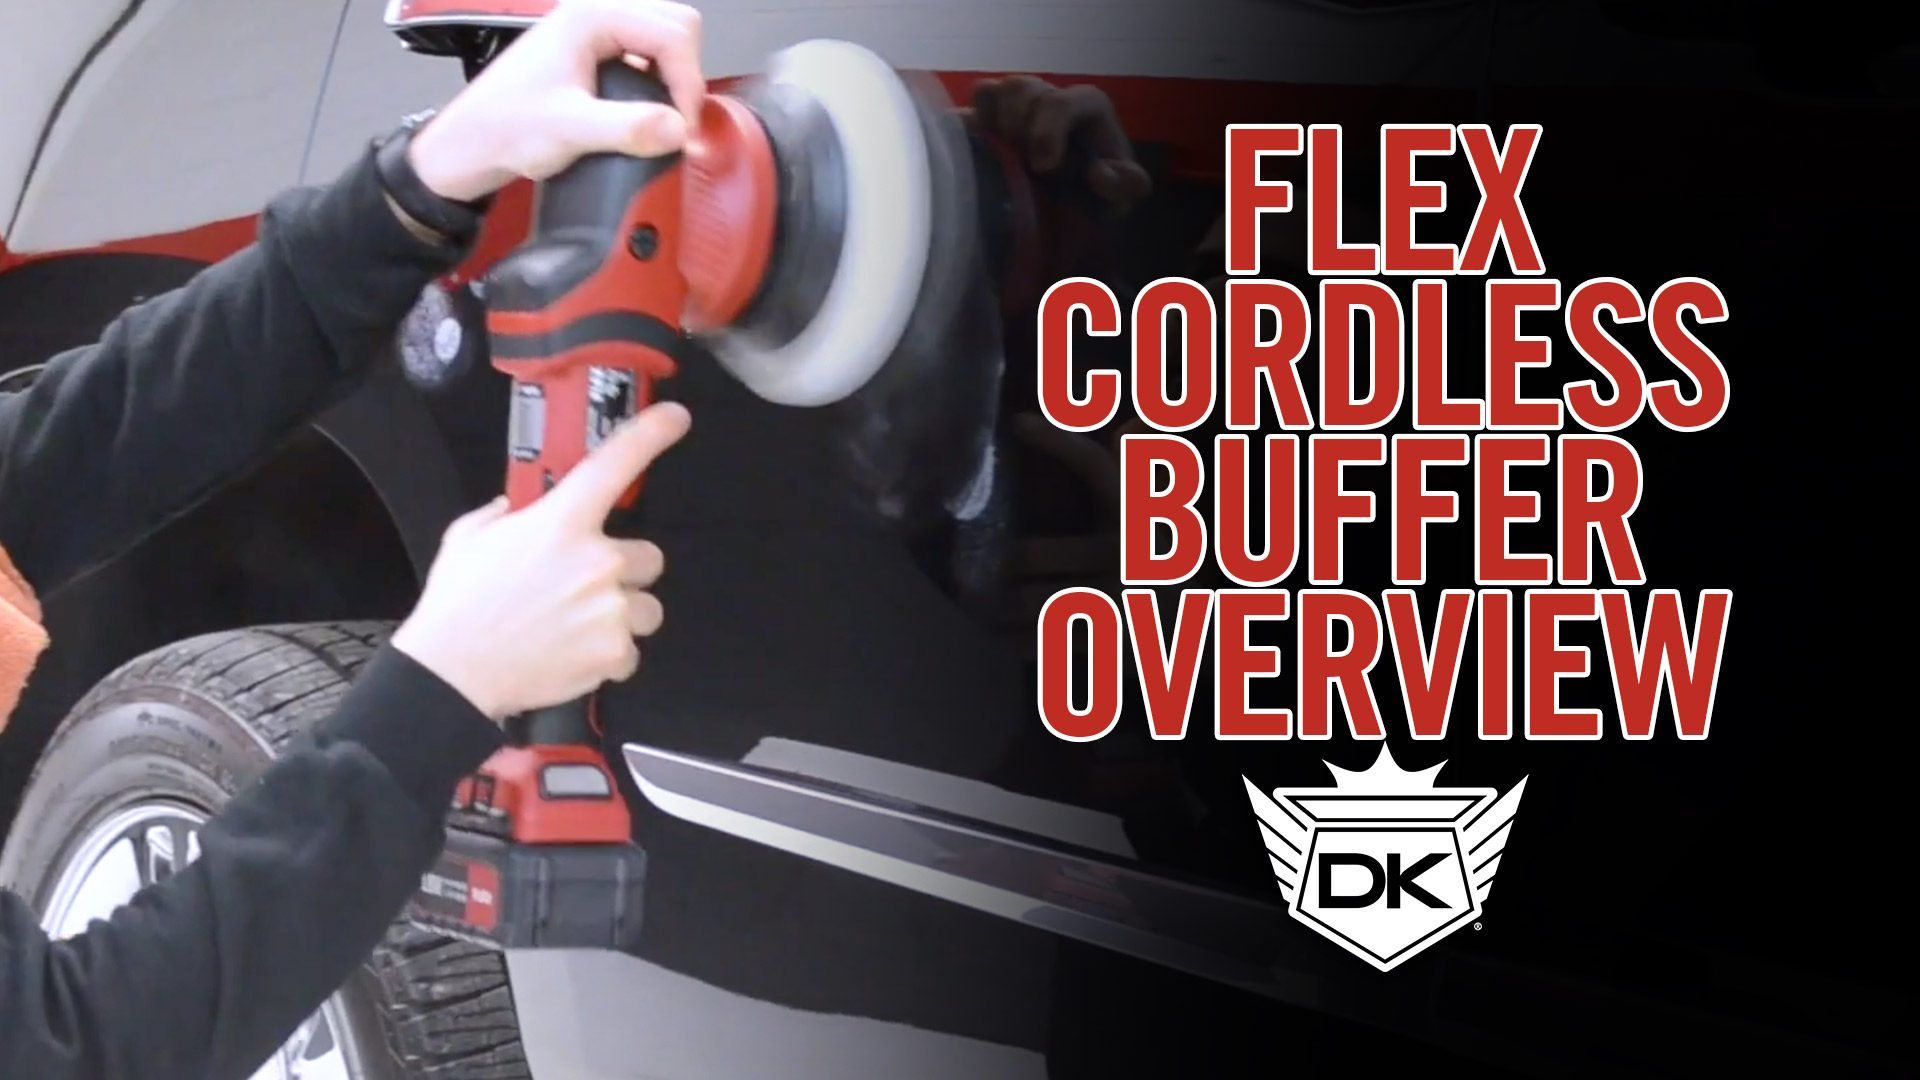 Flex XFE 7-15 150 Cordless Buffer – Overview